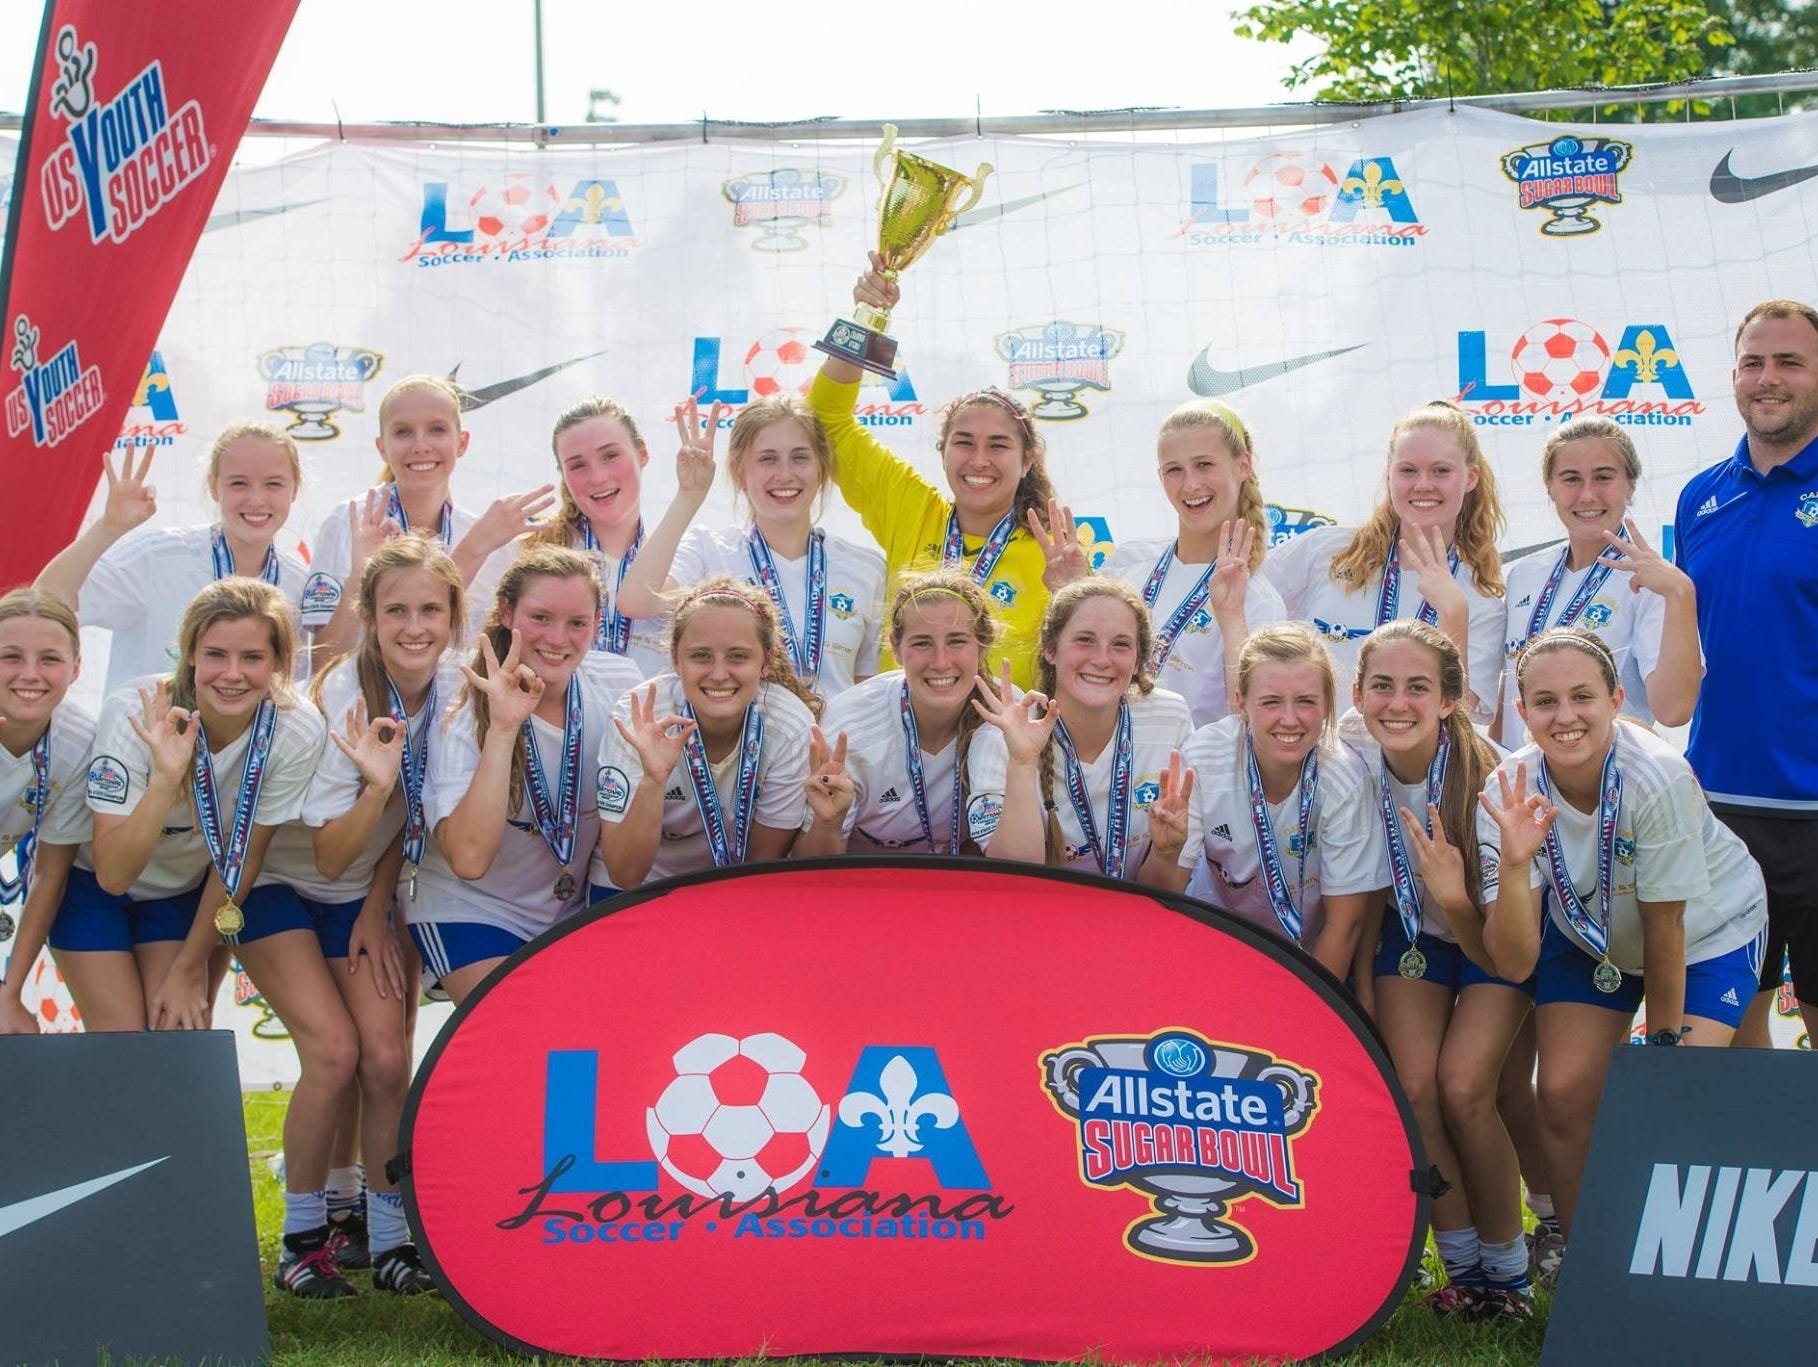 The club team that Ally Peters plays for has won three state championships.